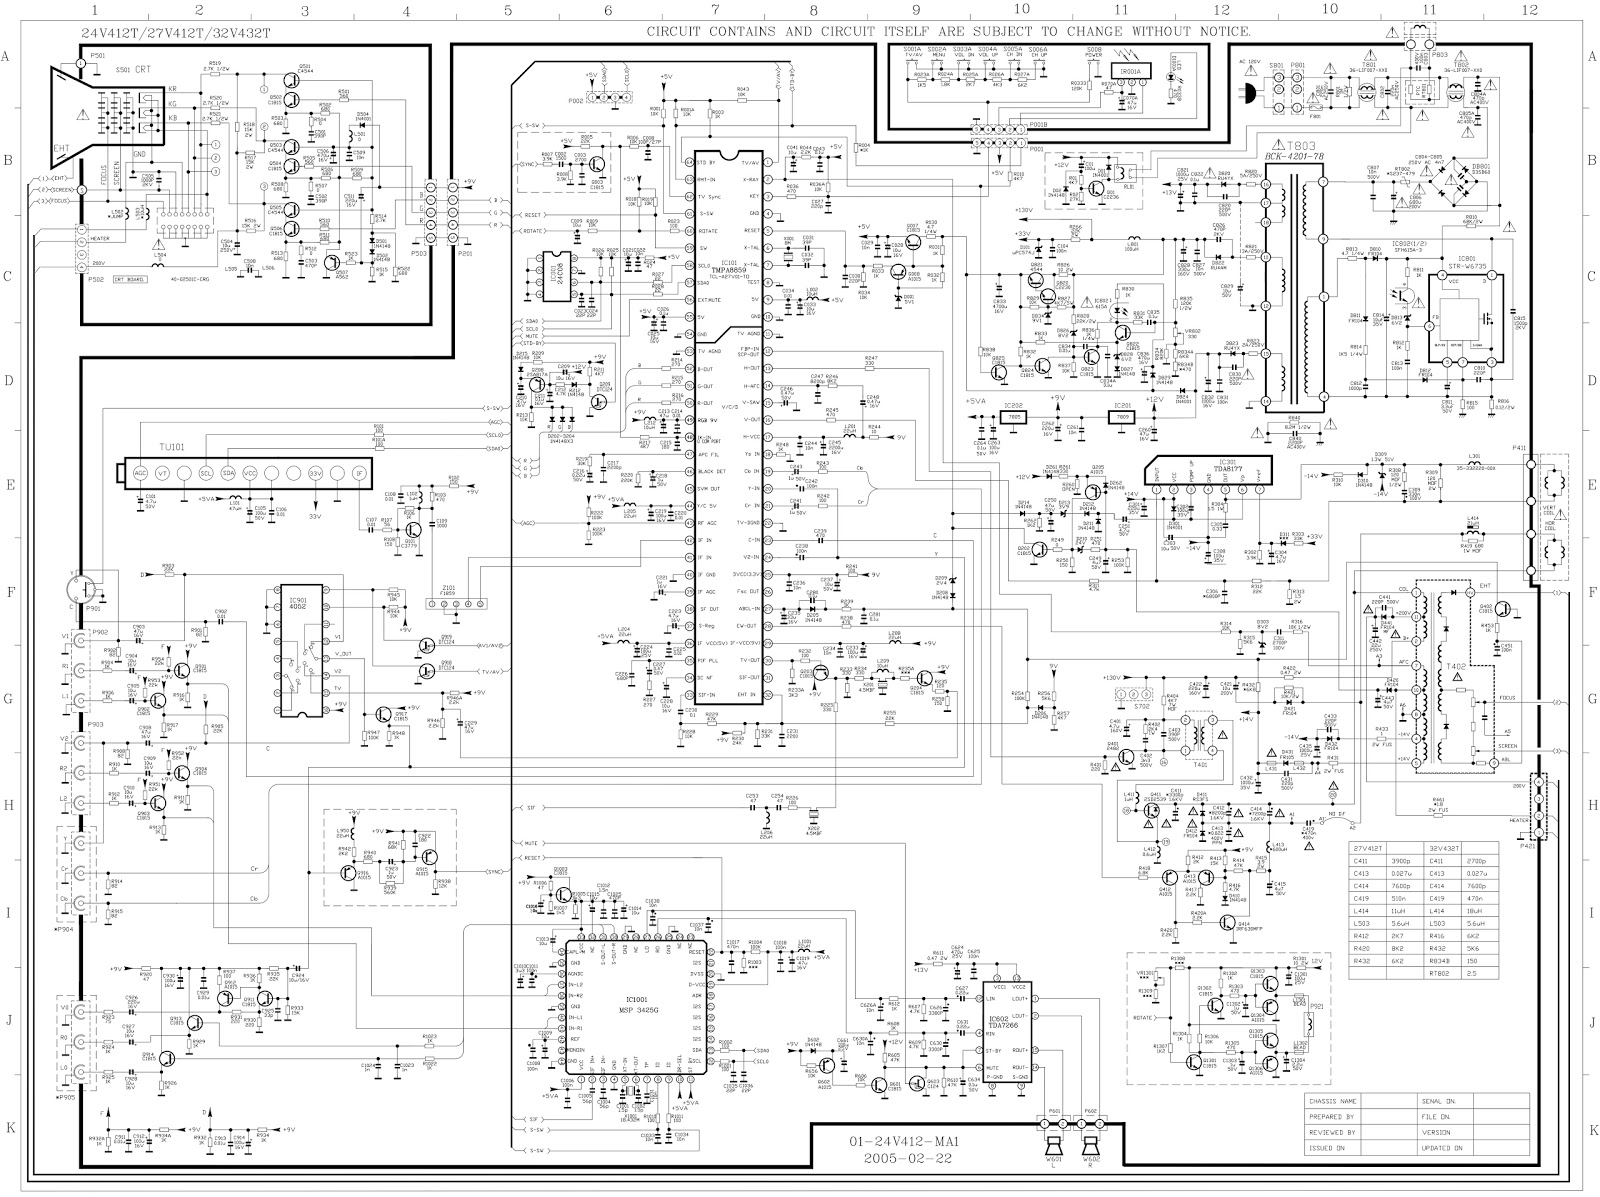 small resolution of rca tv wiring diagram wiring diagramrca tv wiring diagram schema wiring diagramrca tv wiring diagram 16